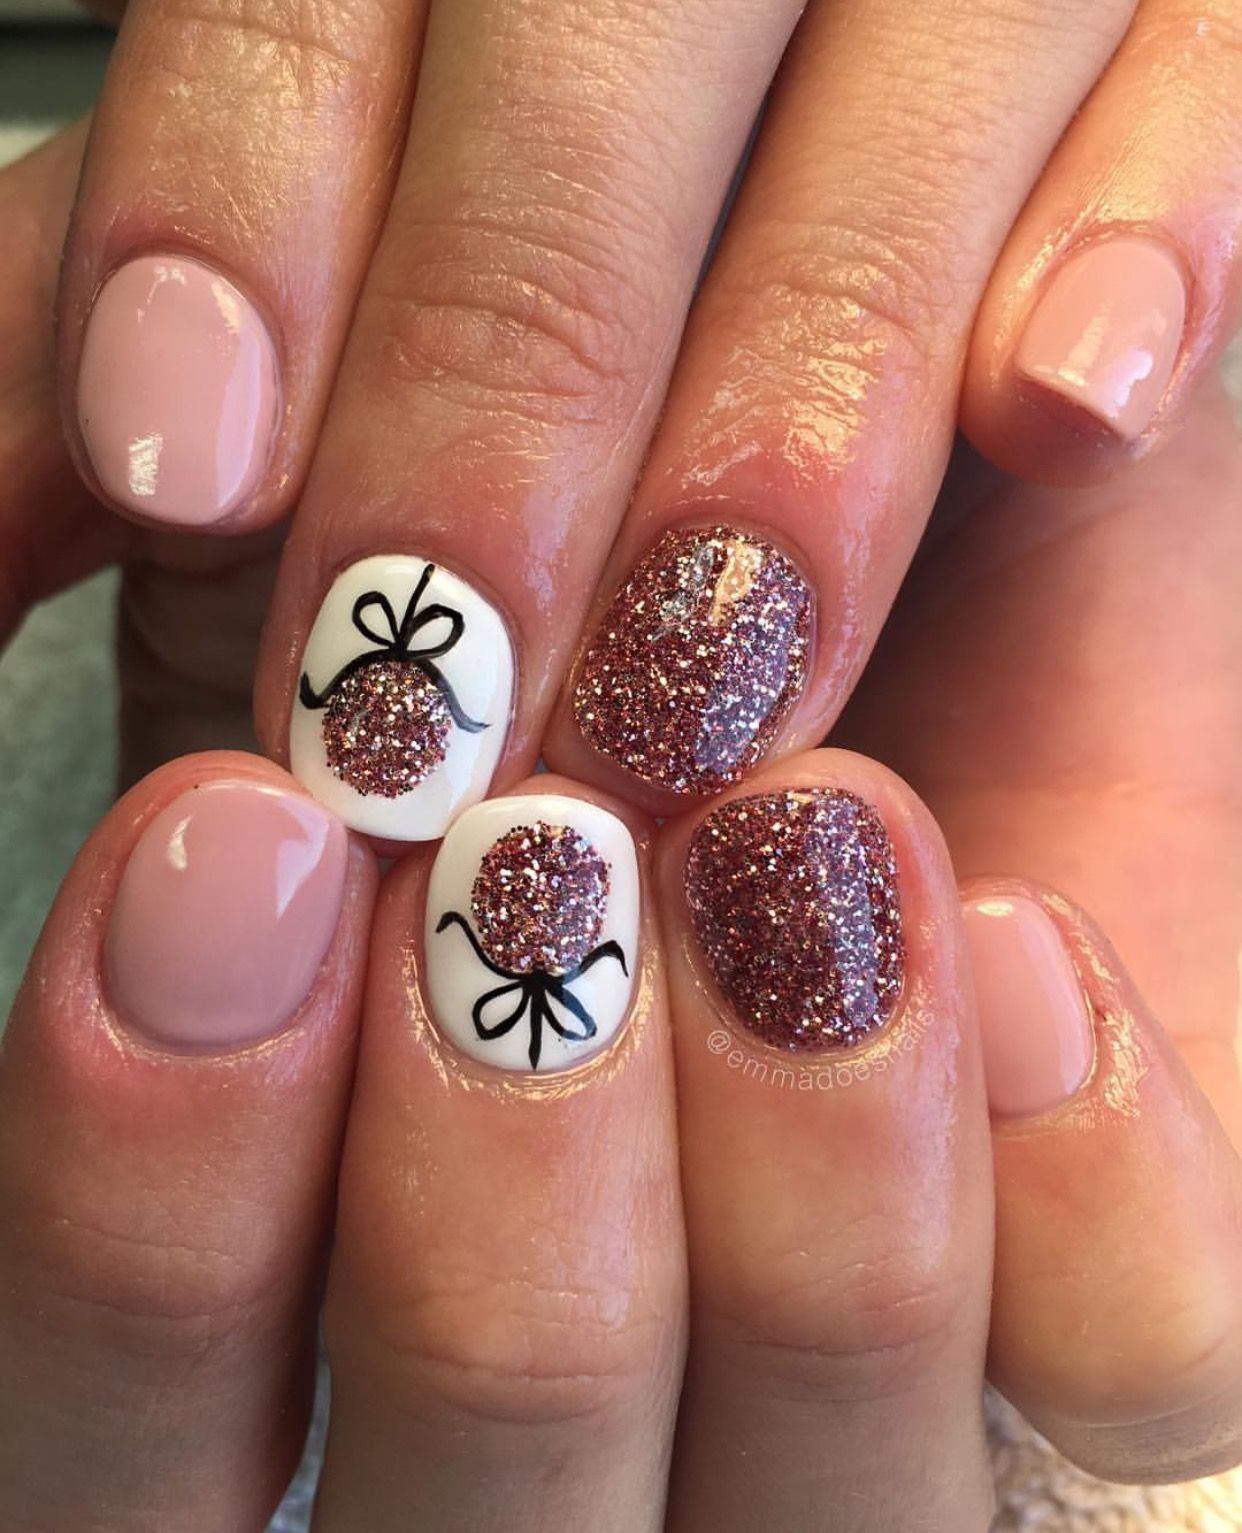 Emmadoesnails christmas nails winter nails ornament nails nude emmadoesnails christmas nails winter nails ornament nails nude nails nail art nail design cute nails pretty prinsesfo Gallery